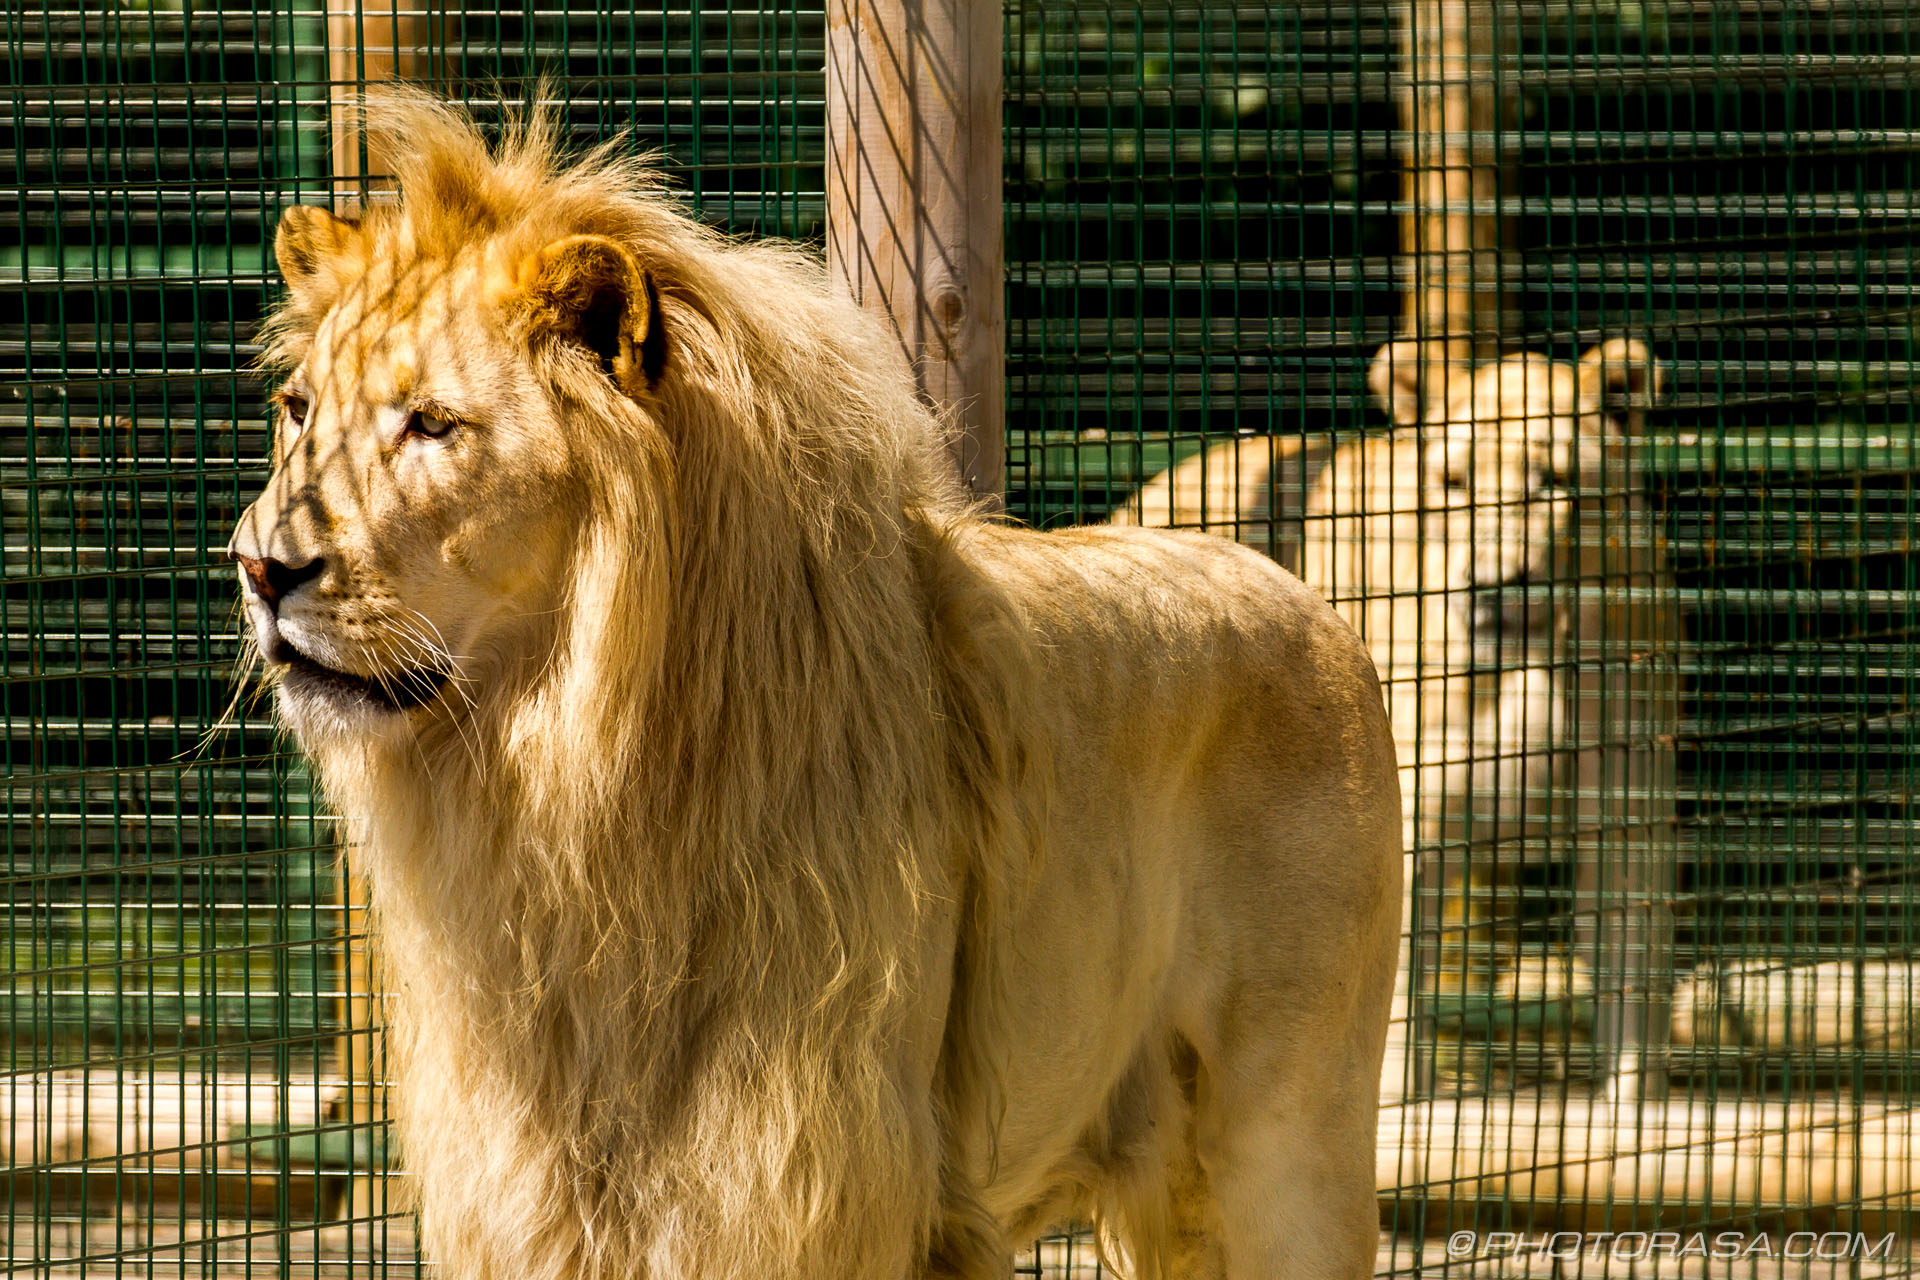 http://photorasa.com/white-lion/white-lion-standing-and-looking/